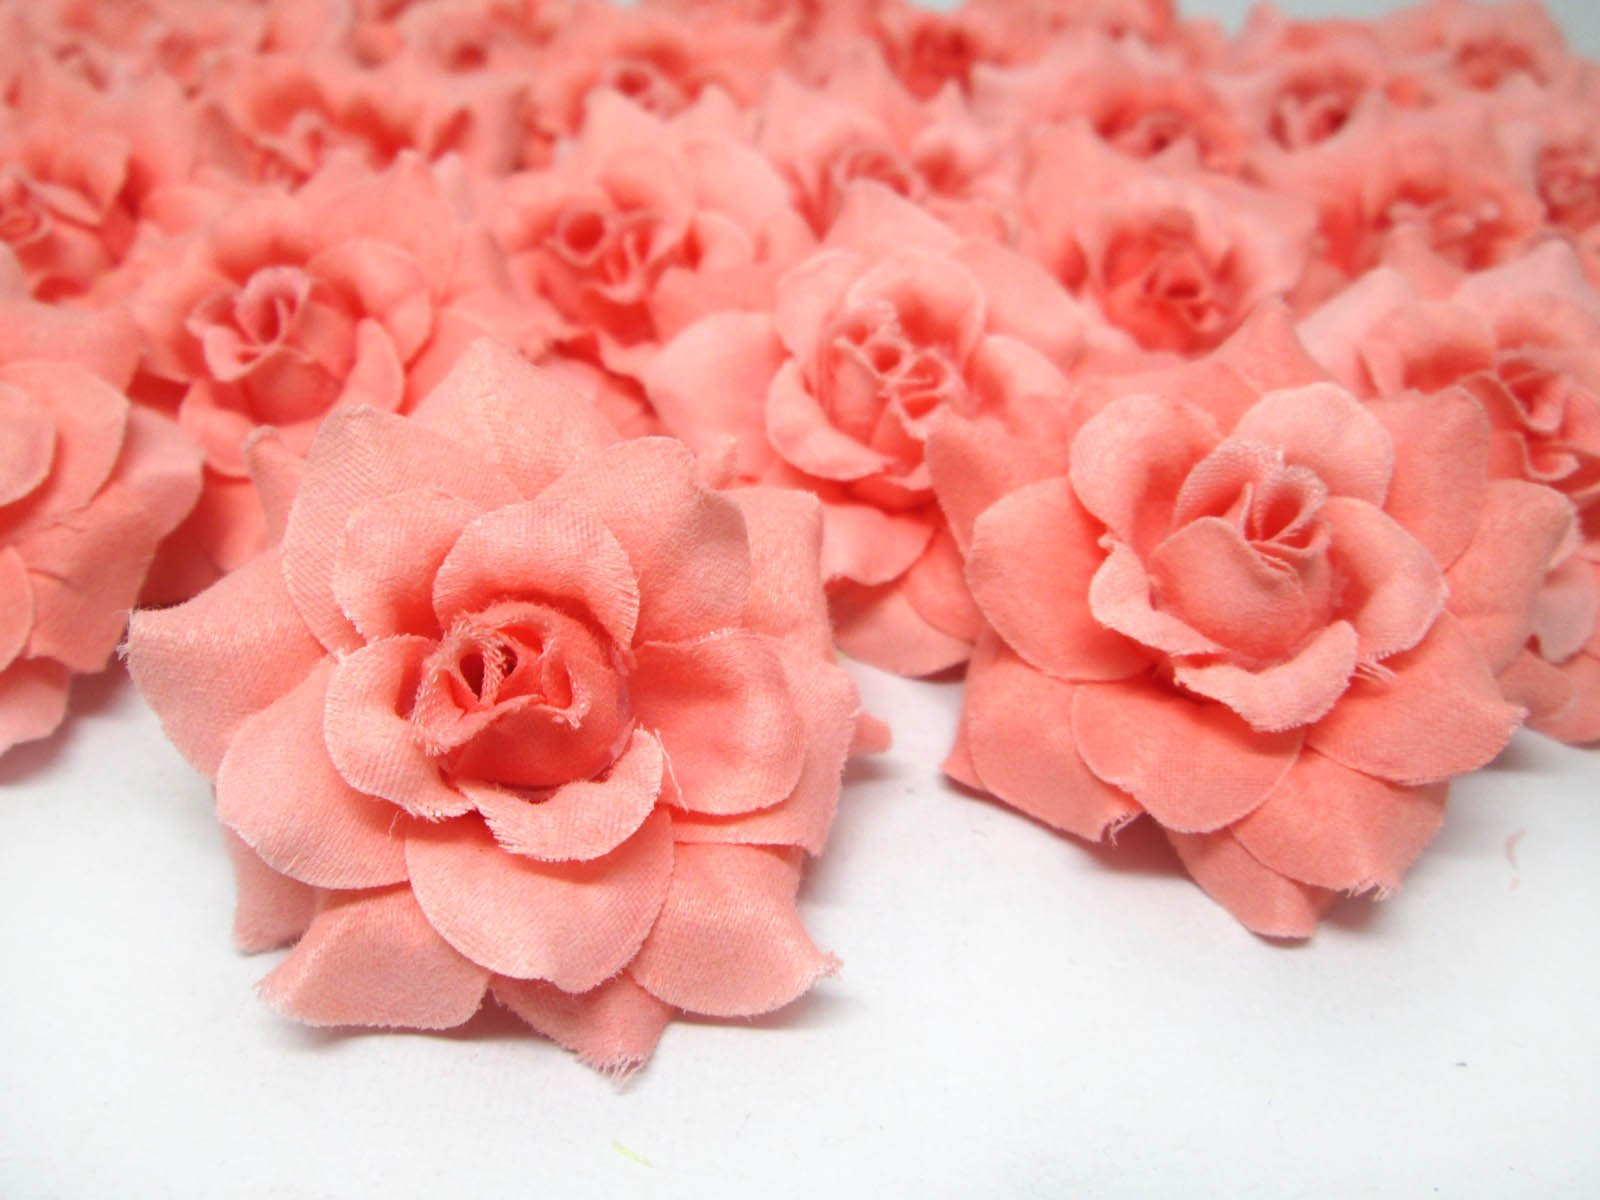 24-Silk-Orose-Roses-Flower-Head-175-Artificial-Flowers-Heads-Fabric-Floral-Supplies-Wholesale-Lot-for-Wedding-Flowers-Accessories-Make-Bridal-Hair-Clips-Headbands-Dress